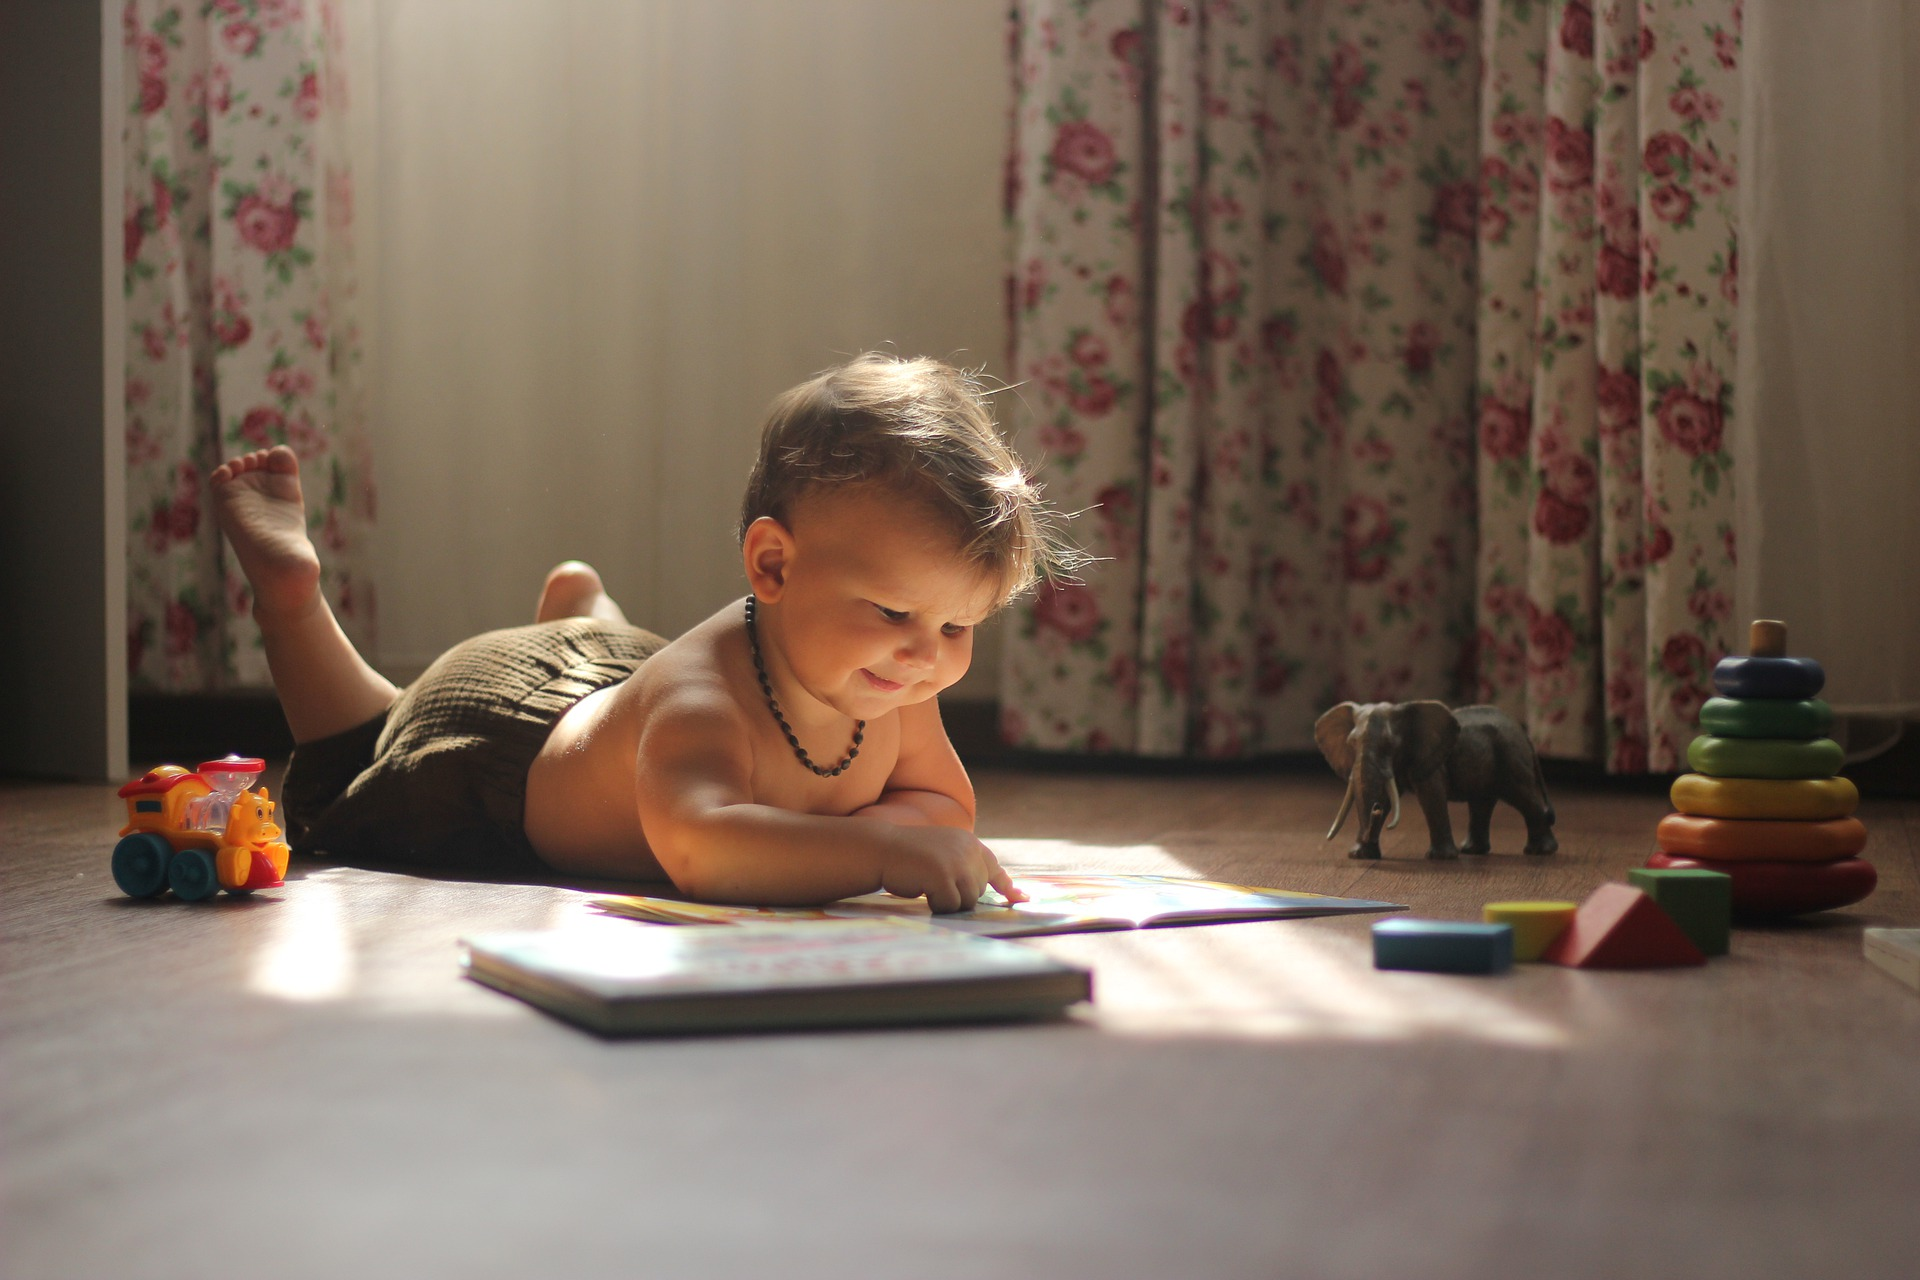 12 Things You Can Learn From A 2 Year Old